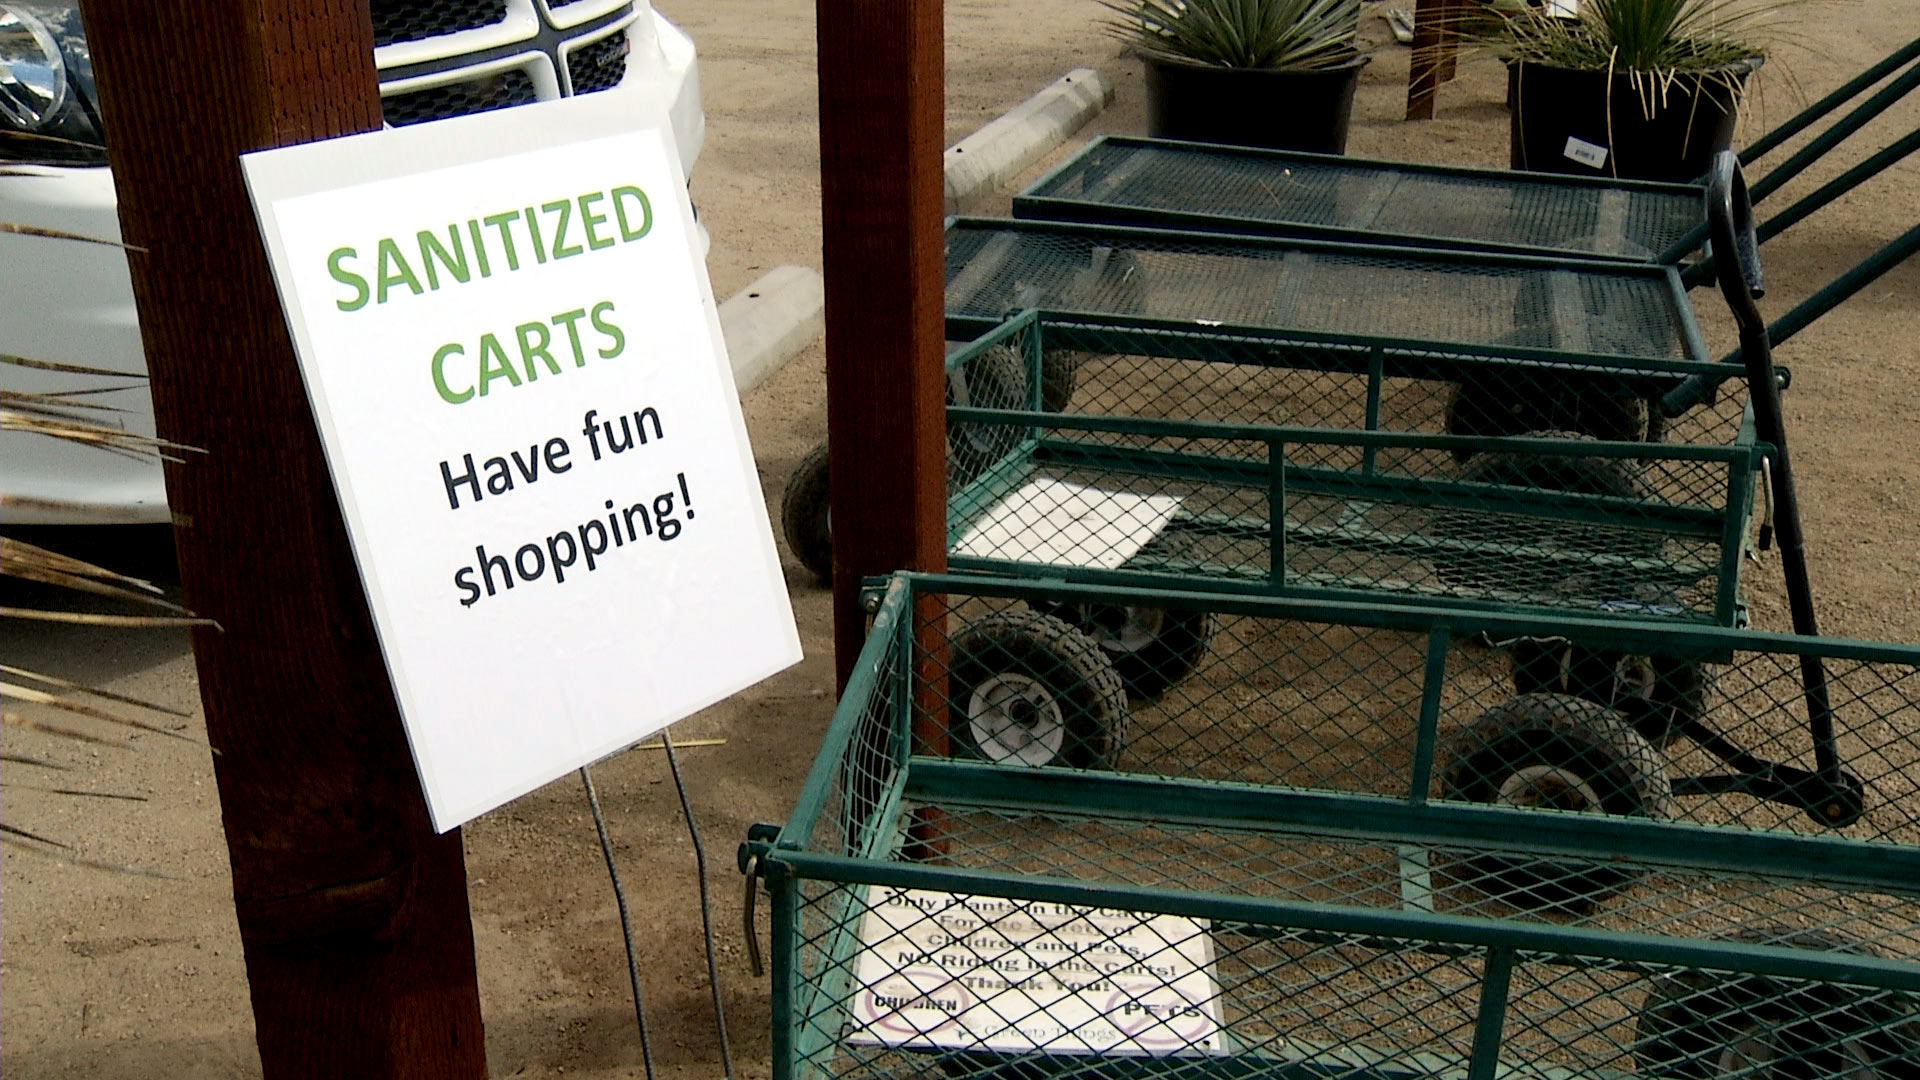 A designated area for sanitized carts at Green Things, a nursery in Tucson, on April 7, 2020.